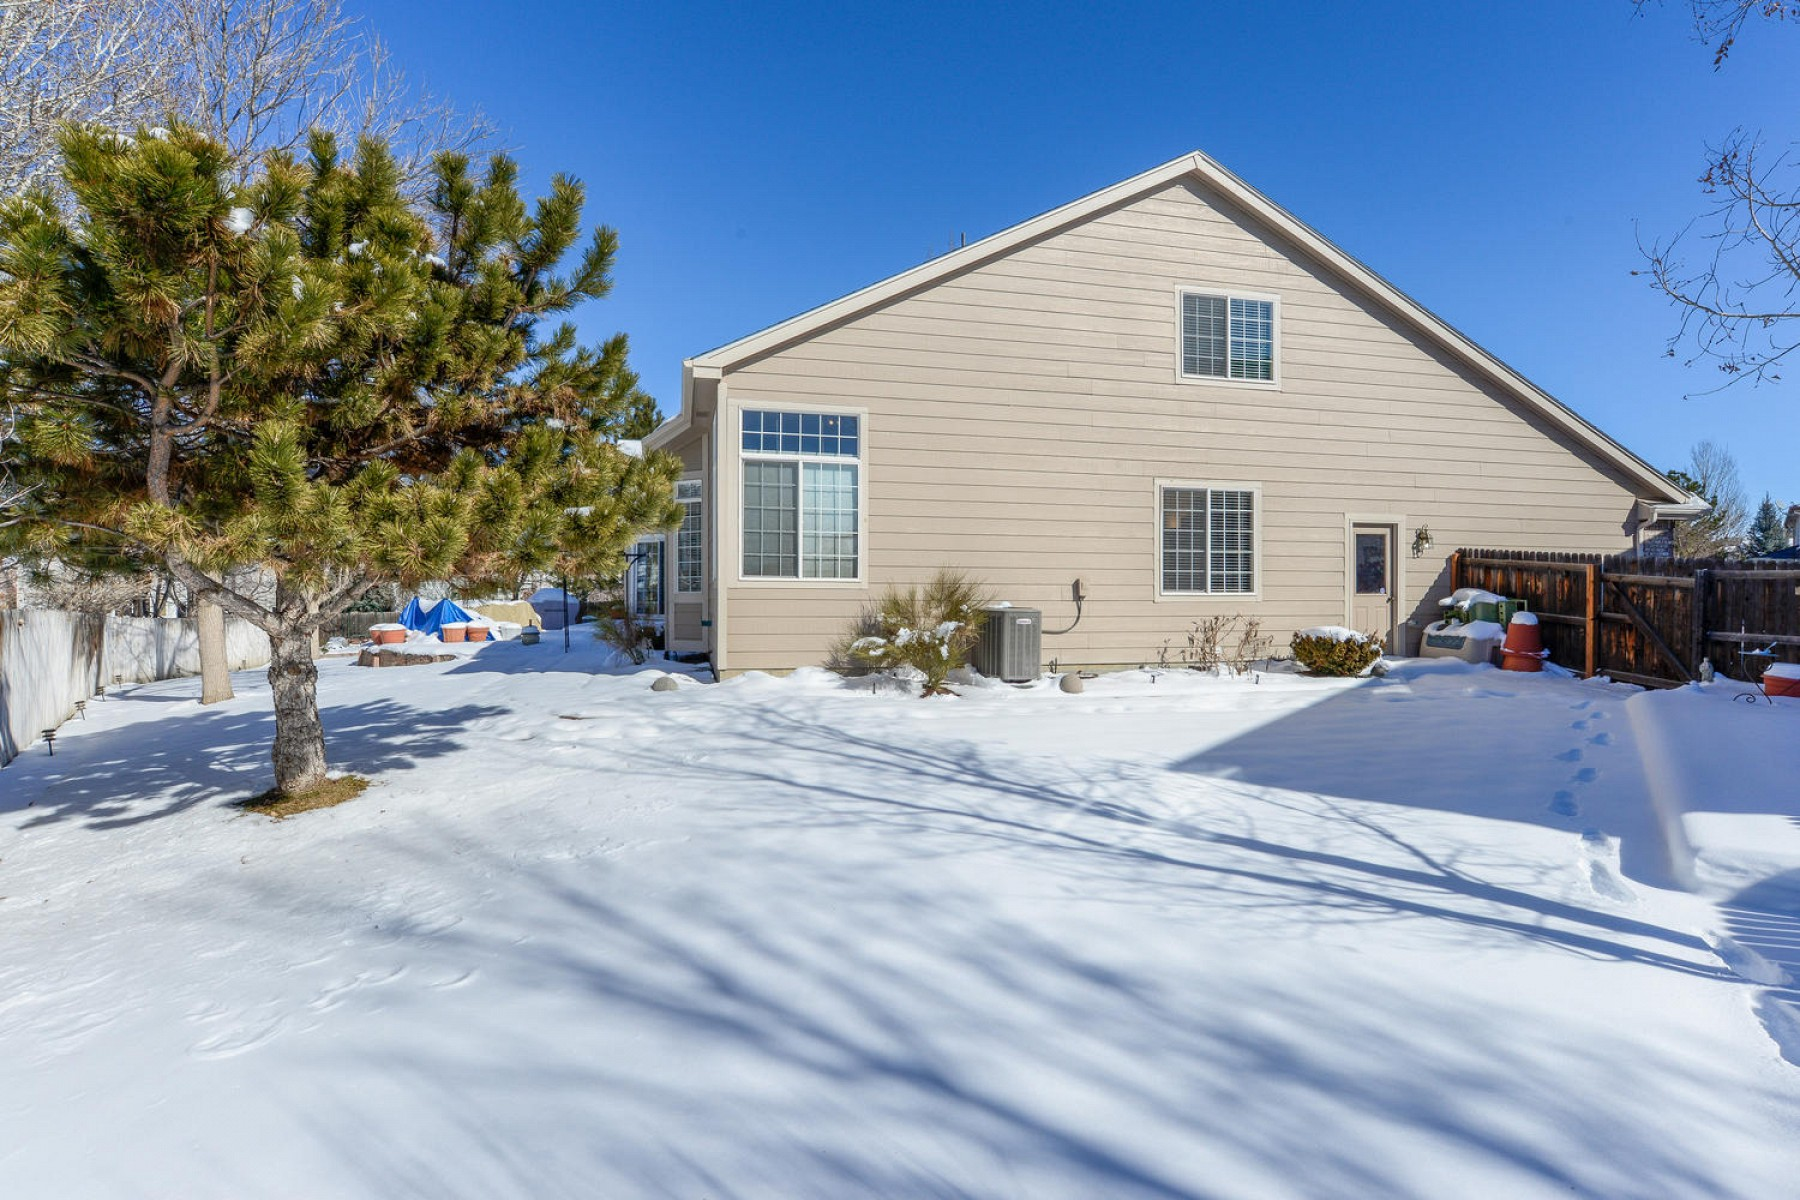 18729 E. Progress Avenue, Centennial, CO 80015